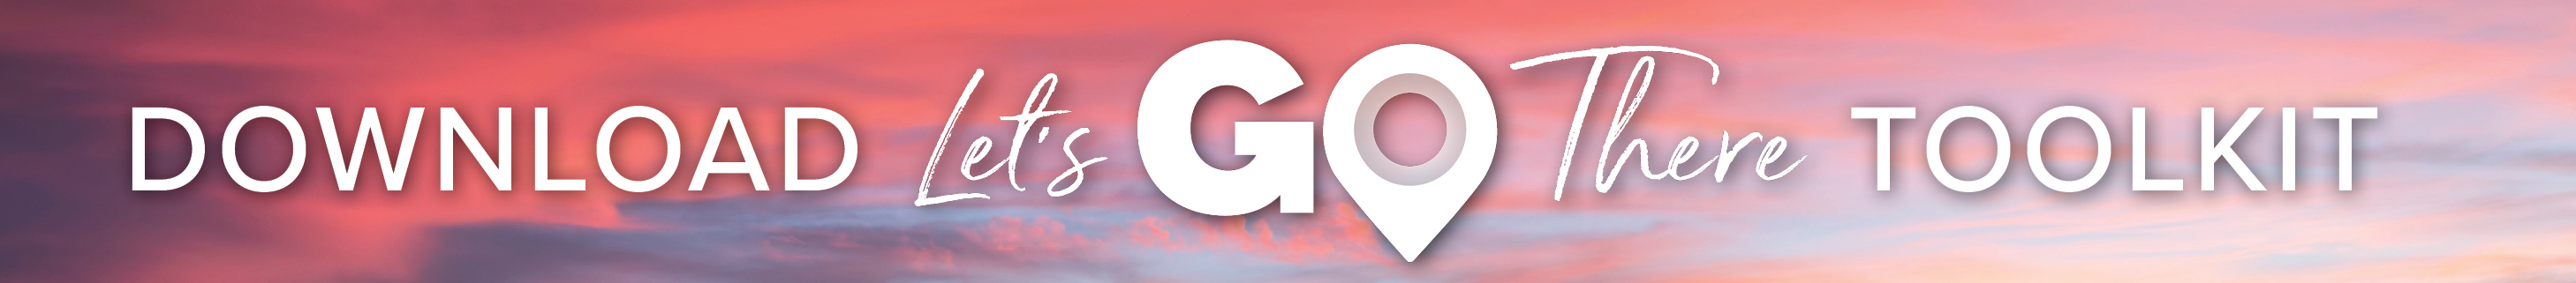 Download Let's Go There Toolkit